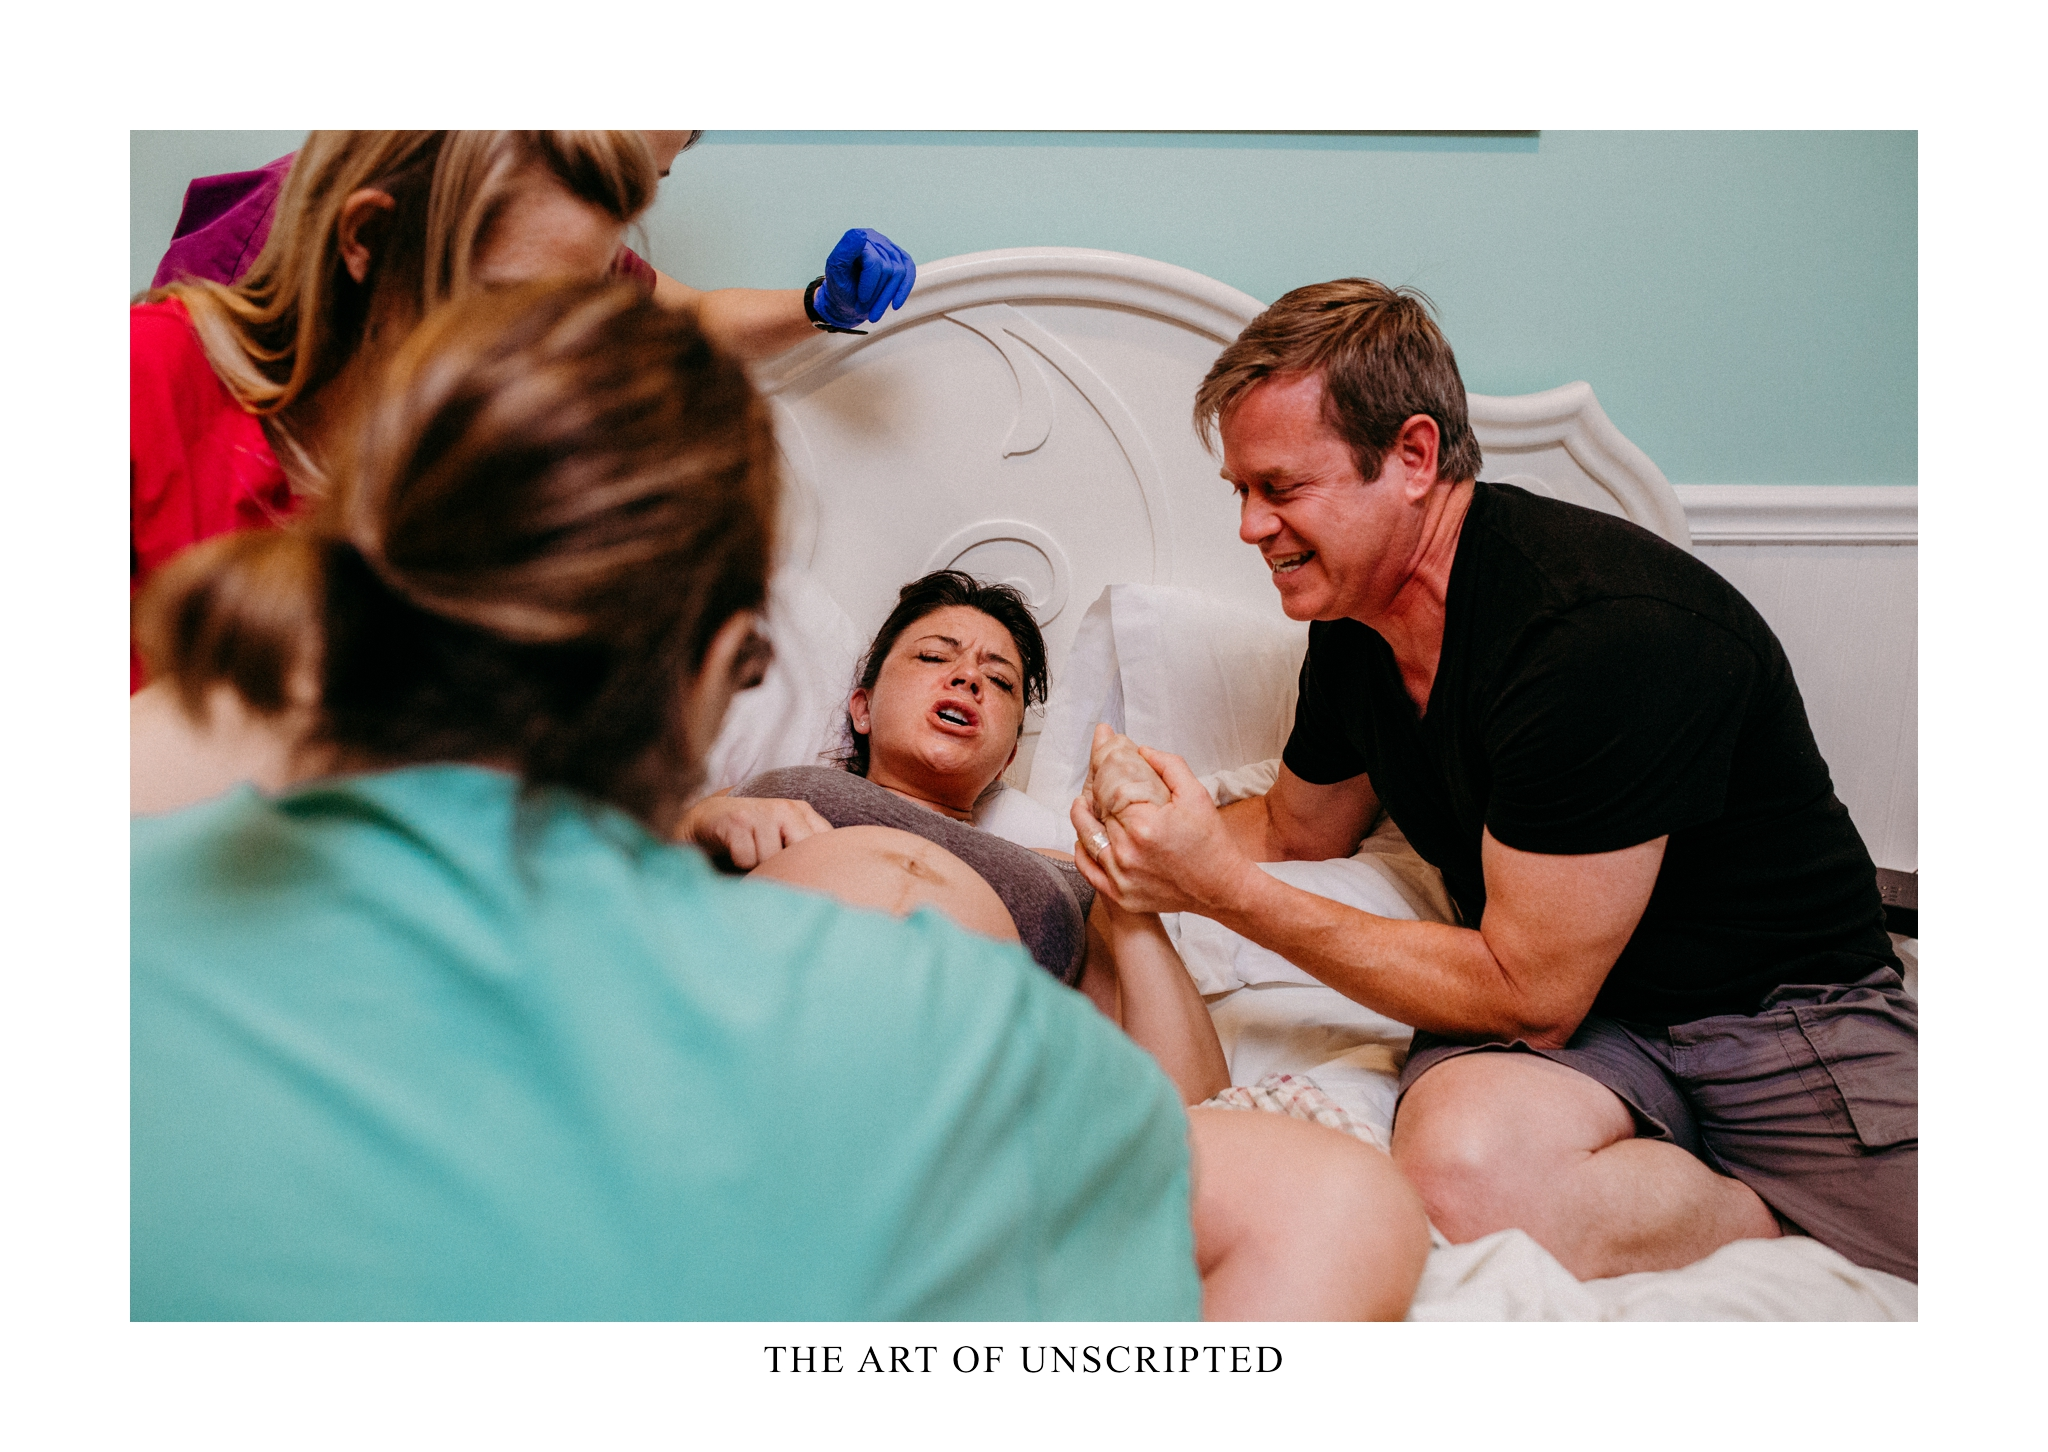 2017-06-11_001127__THE ART OF UNSCRIPTED_SPRINGFIELD MO_BIRTH PHOTOGRAPHER_ DOCUMENTARY_STORYTELLING_417_PHOTOGRAPHER